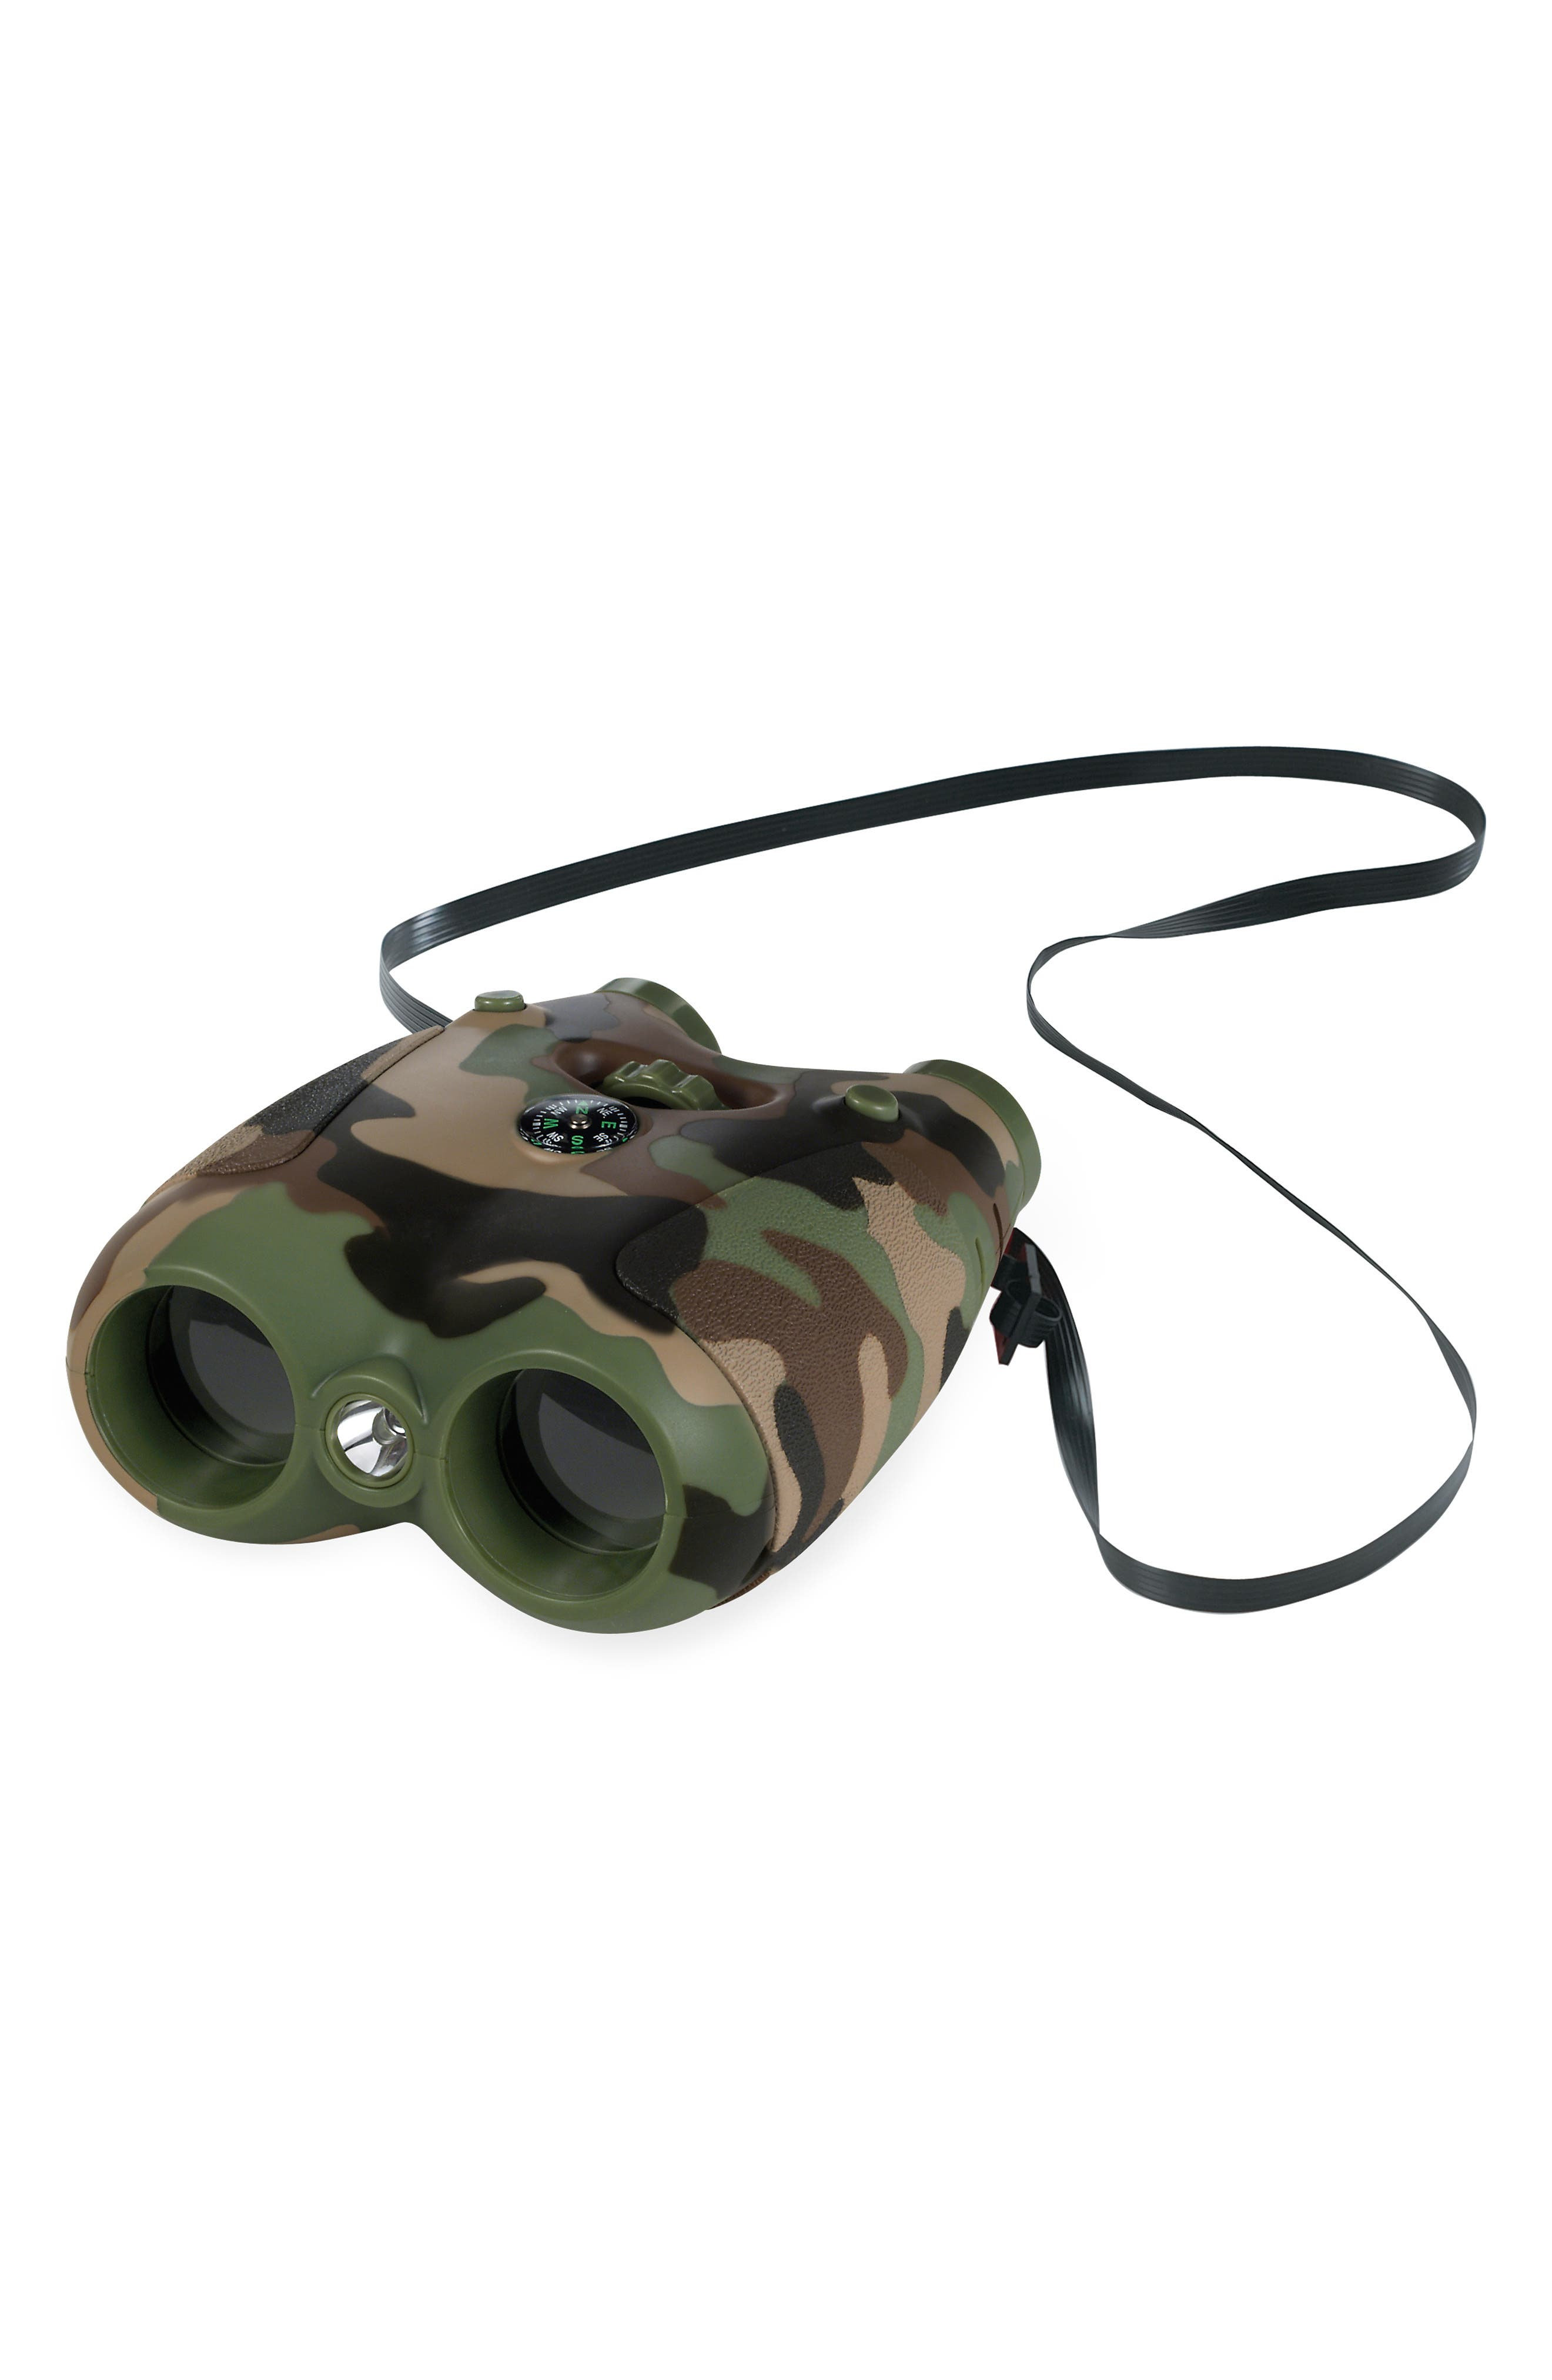 Camouflage Binoculars,                             Alternate thumbnail 2, color,                             NO COLOR